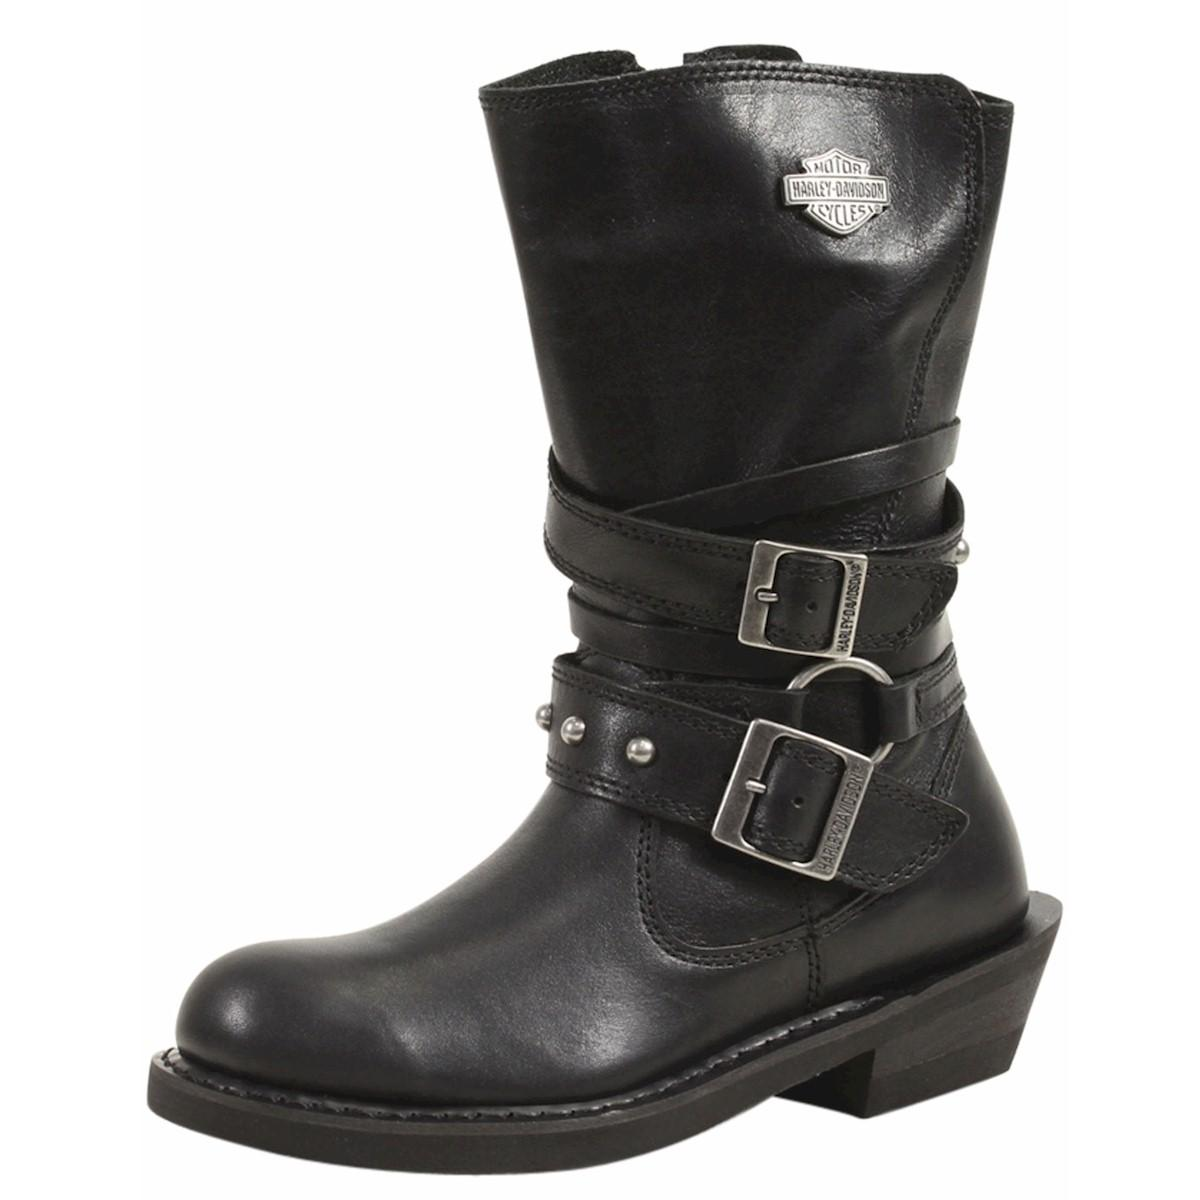 93fab1905d5f Harley-Davidson Women s Ardwick Boots Shoes